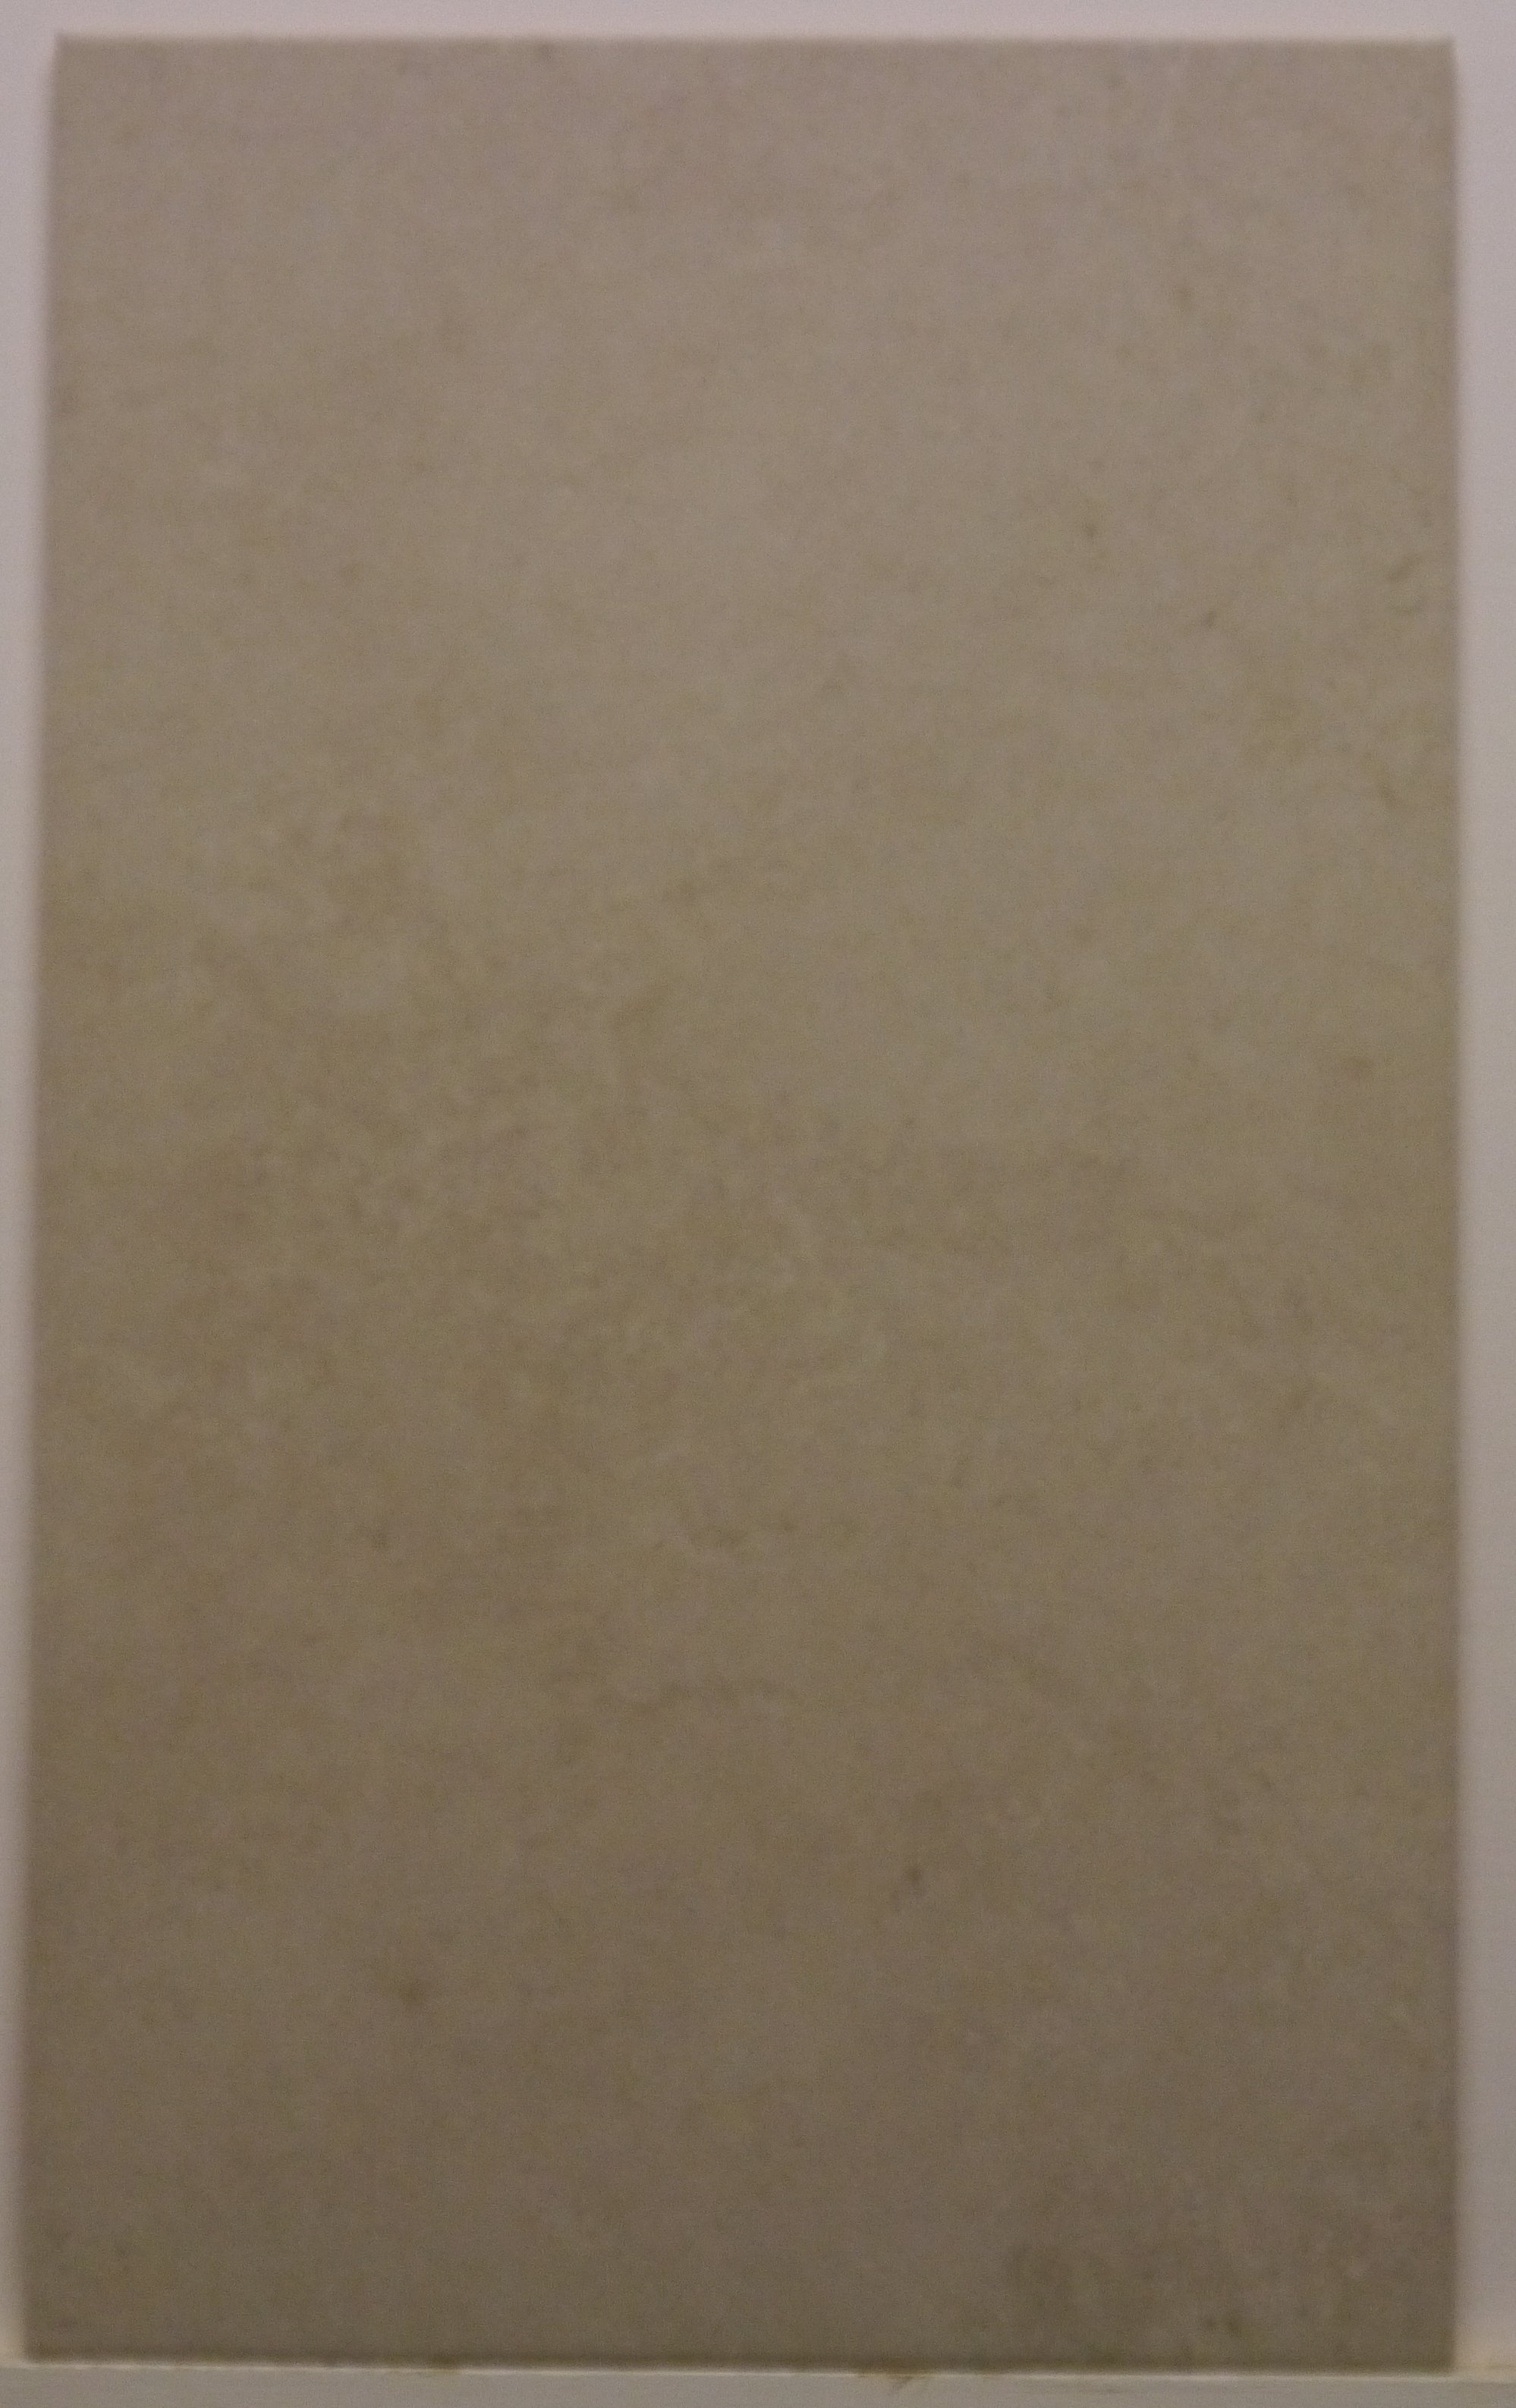 M9048 ceramic wall tile 333 x 550 light taupe the tile warehouse maldon essex - Wall taupe ...